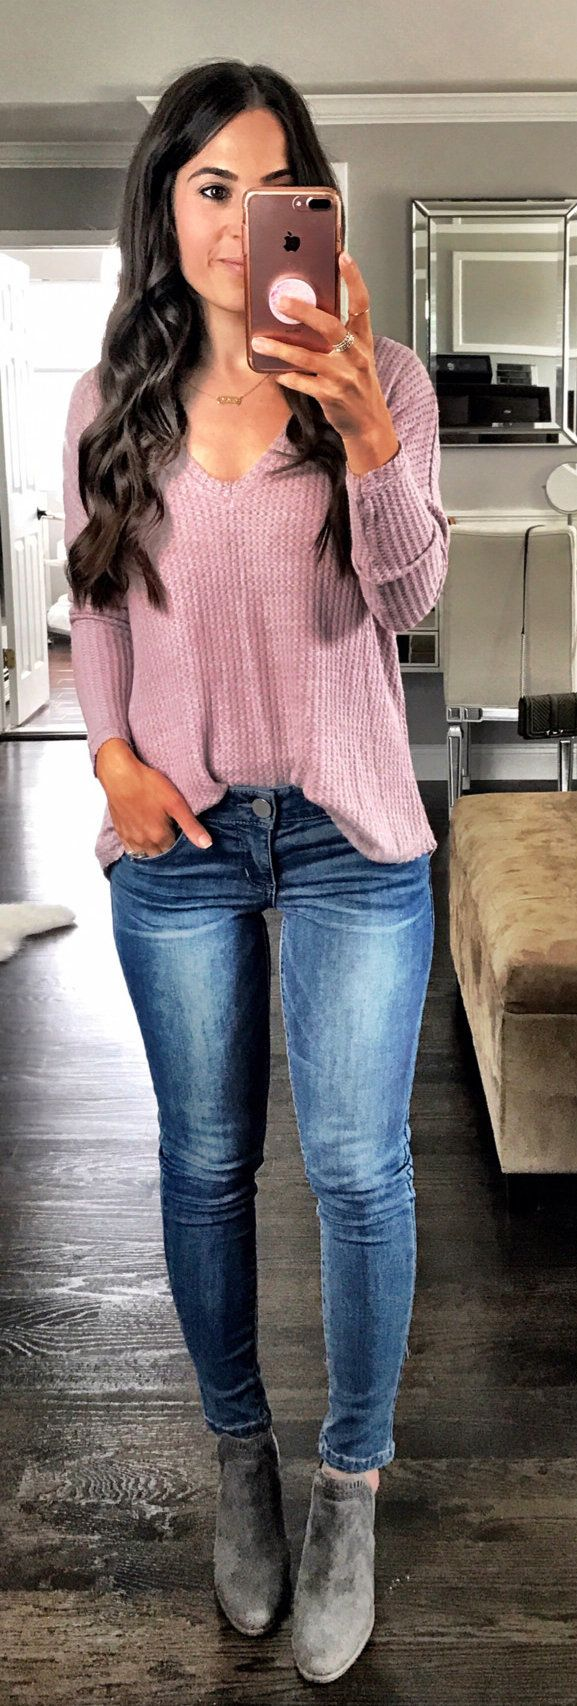 #summer #outfits Here Are The Jeans On From My Previous Post  They're The Most Comfortable And Flattering Jeans I've Ever Had AND They're On Sale For $44